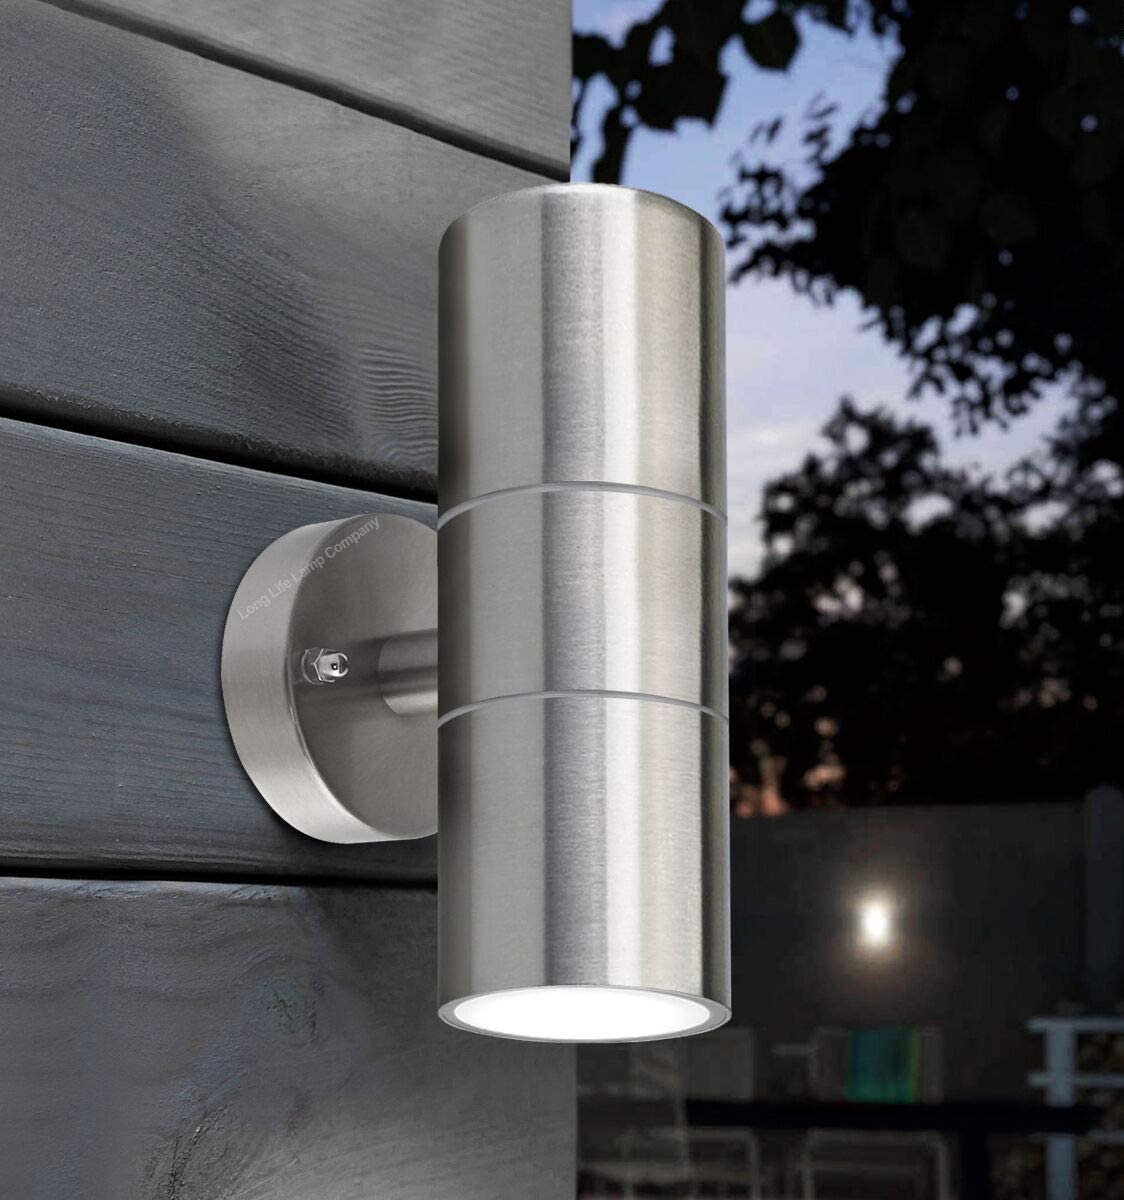 Aureole-Series Modern Porch Light UL-Listed Stainless Steel Satin Nickel Finished Outdoor Wall Lamp Weather-Proof Cylinder Wall Sconce Suitable for Garden Patio